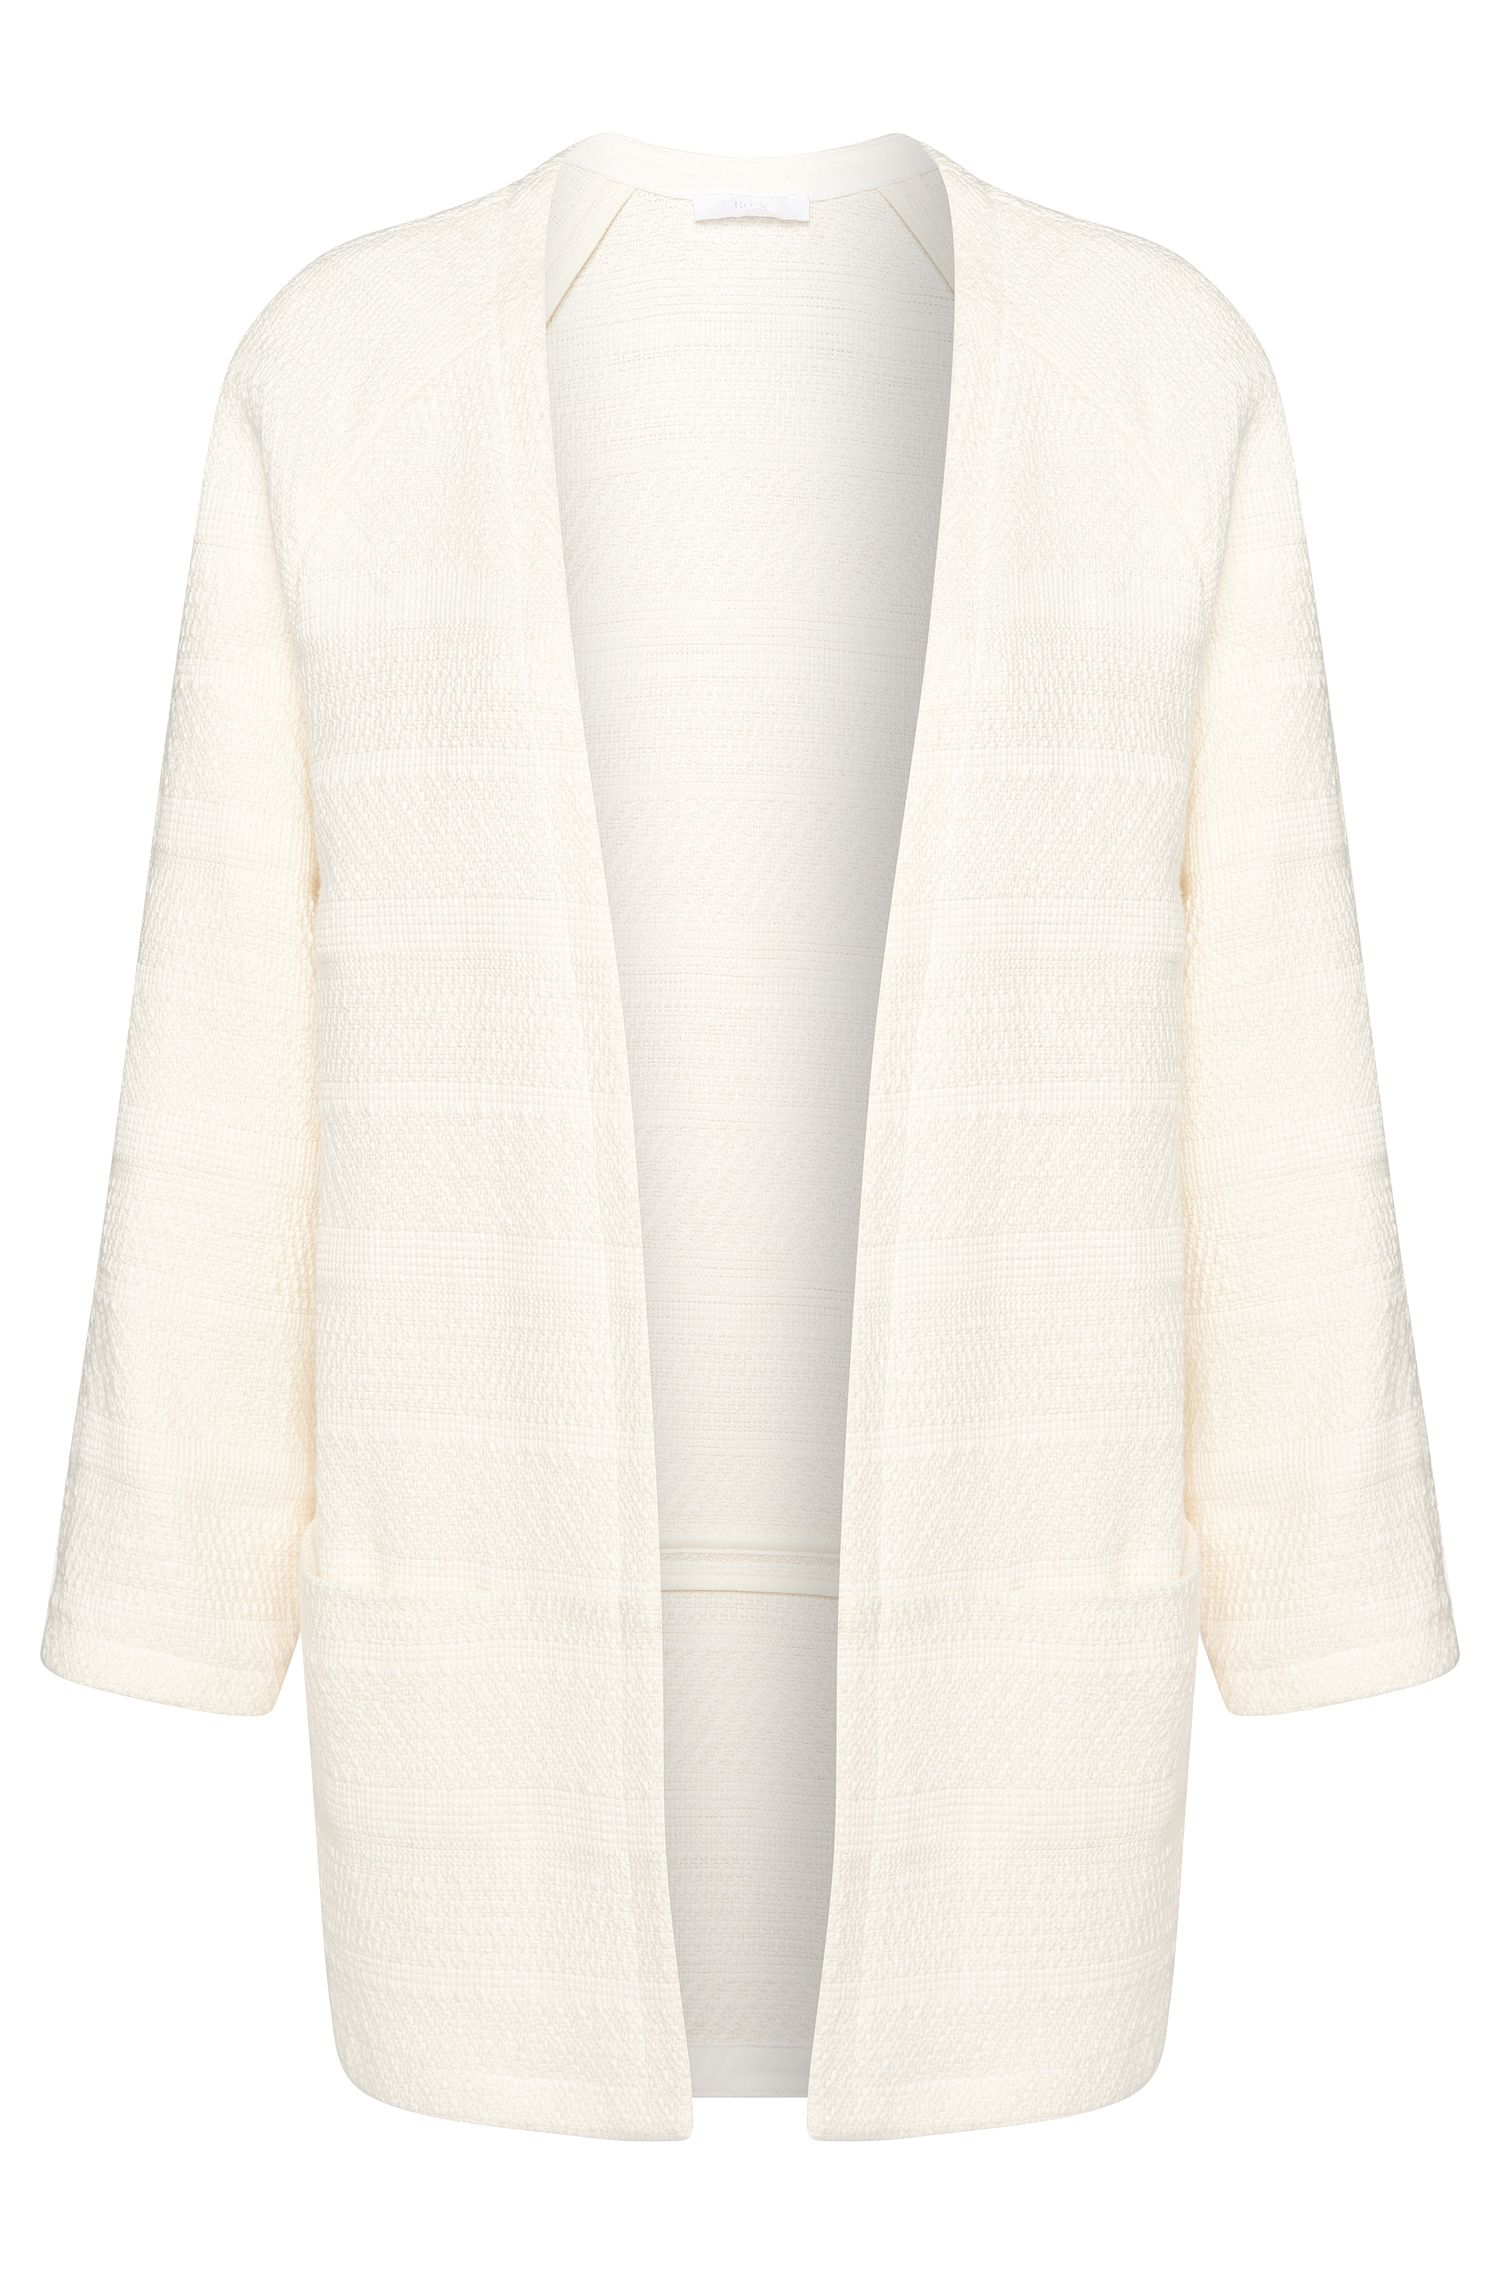 Open knitwear blazer in stretchy cotton blend: 'Krala'